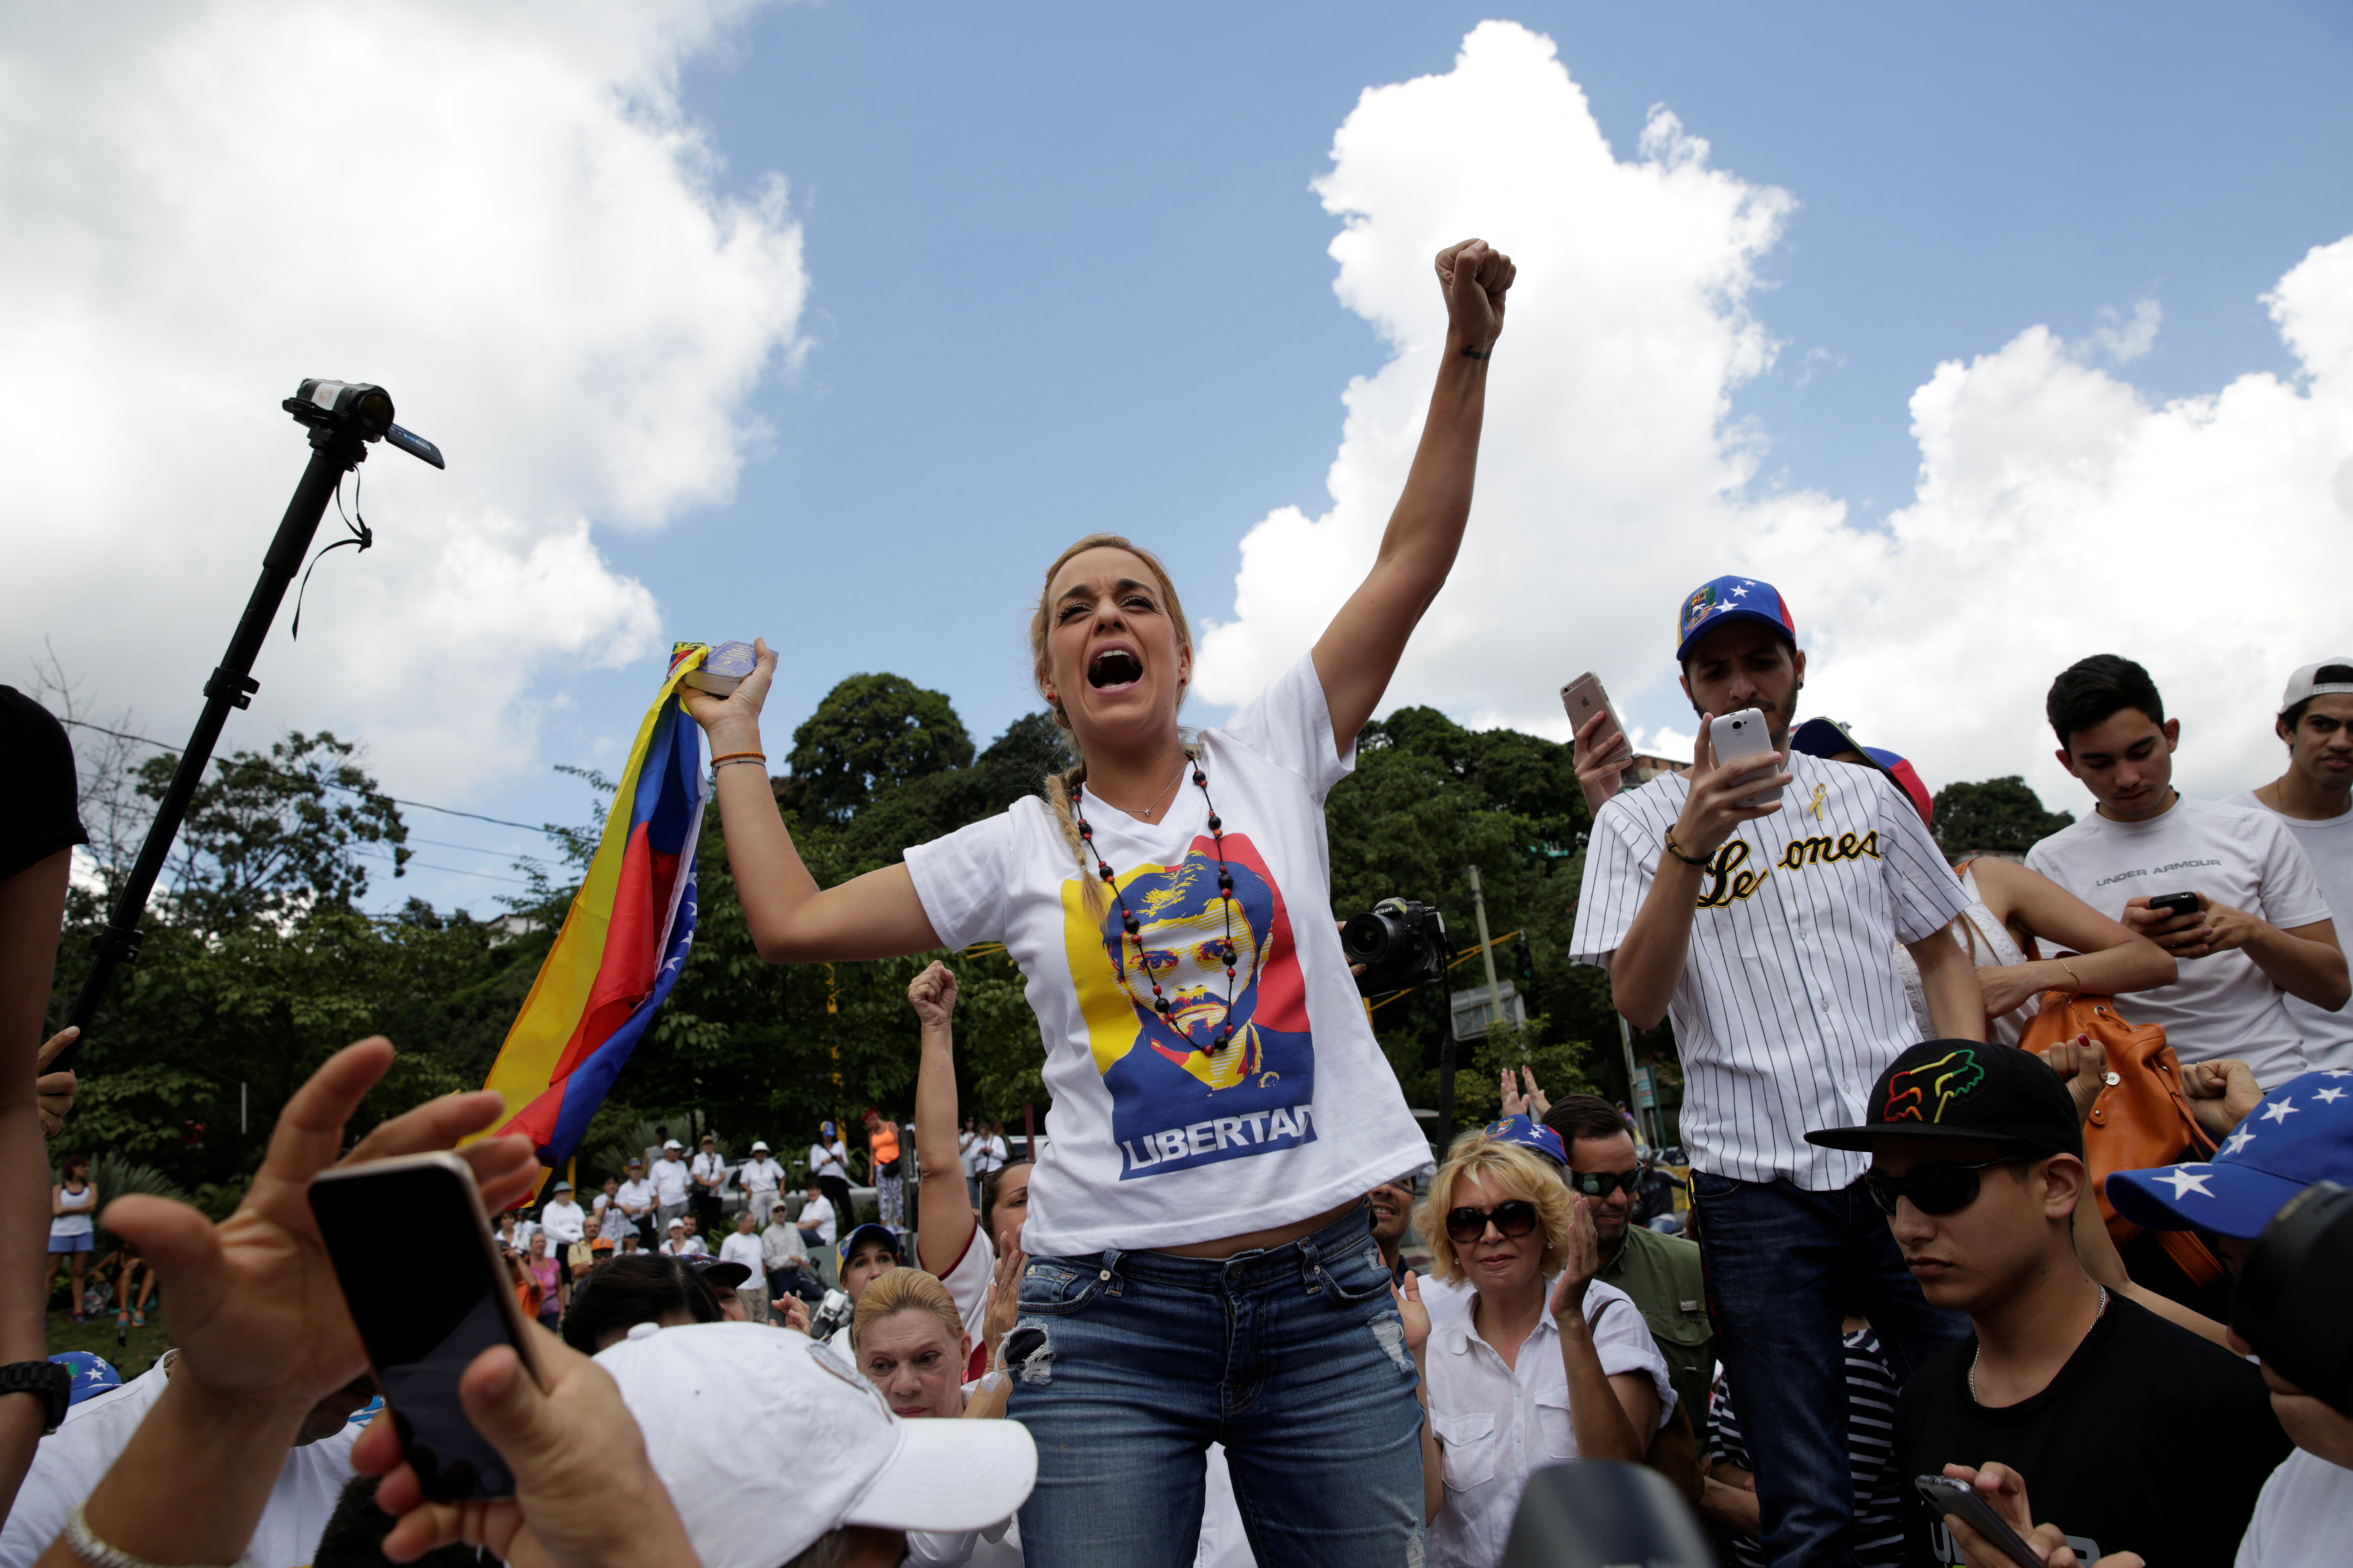 Lilian Tintori (C), wife of jailed Venezuelan opposition leader Leopoldo Lopez arrives to a rally to demand a referendum to remove Venezuela's President Nicolas Maduro in Caracas, Venezuela October 22, 2016. REUTERS/Marco Bello